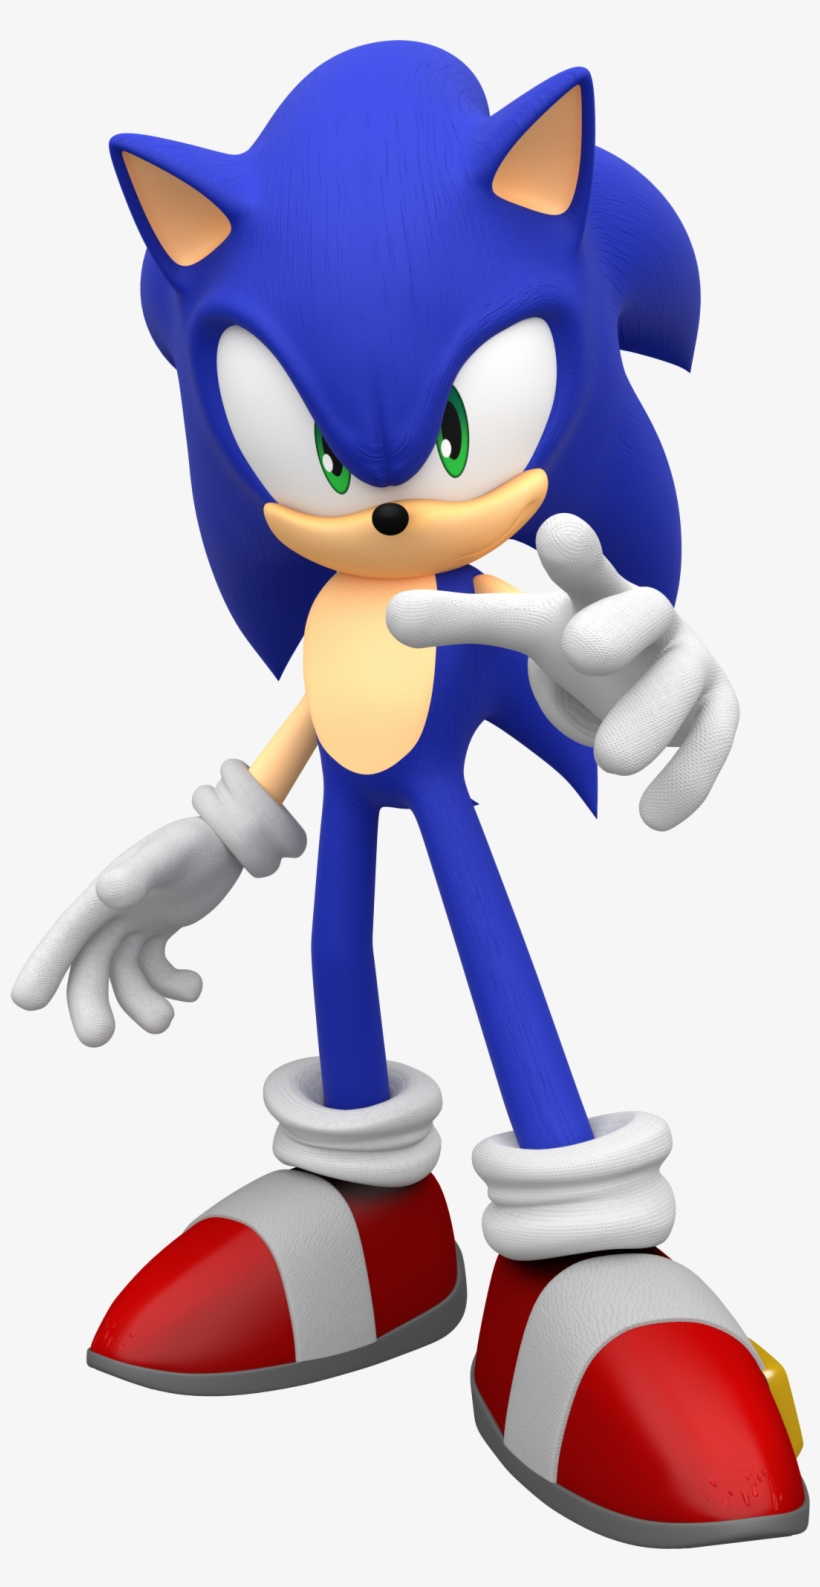 Sonic The Hedgehog 3d Model Sonic The Hedgehog 3d Png Transparent Png 1077x2032 Free Download On Nicepng